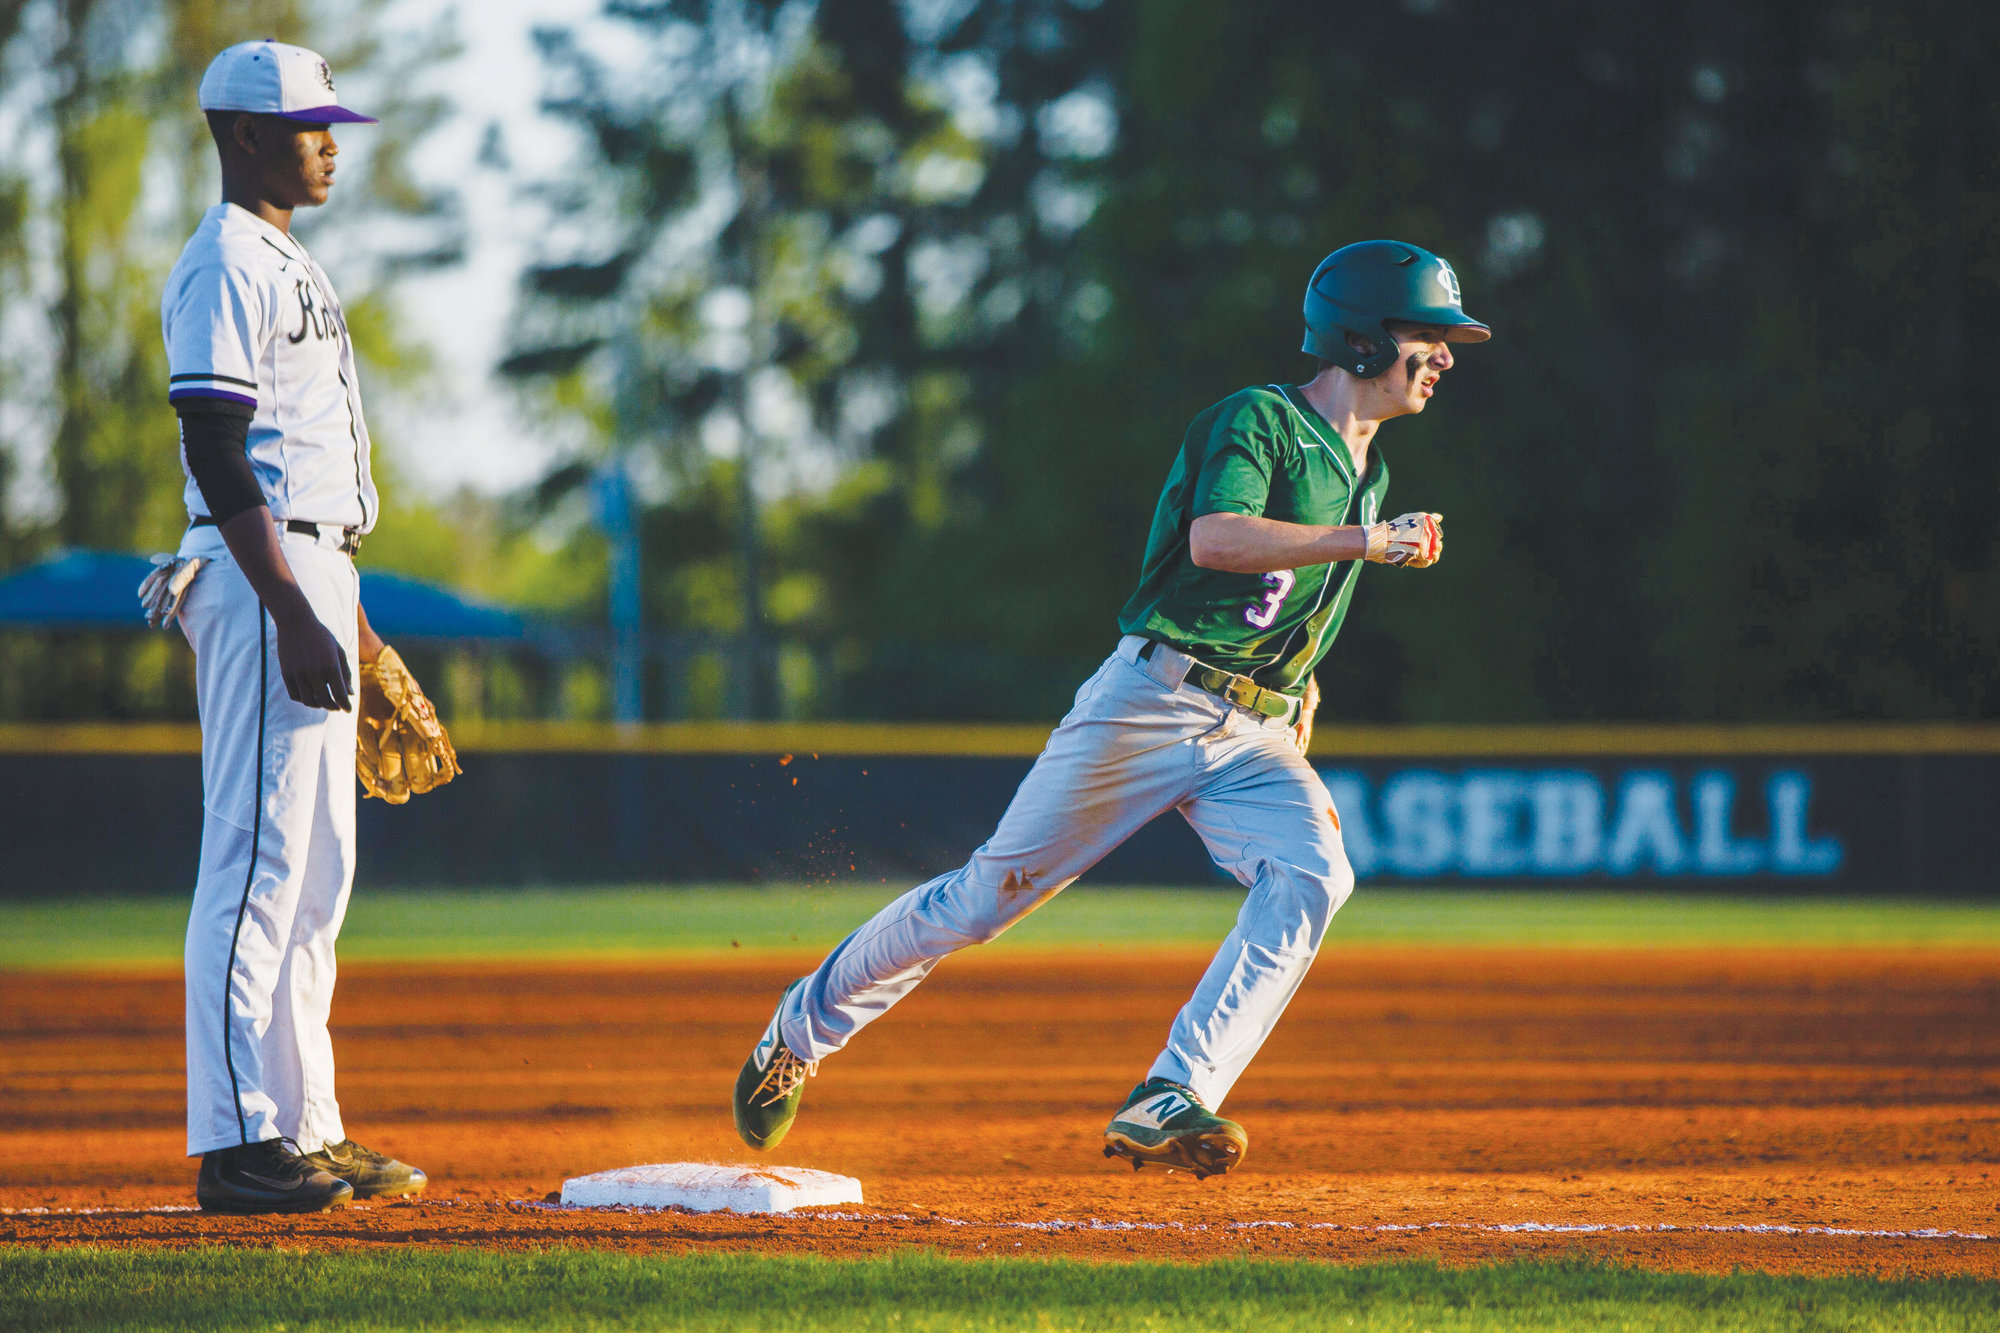 Lakewood's Ian Morris rounds third base on his way to scoring a run during the Gators' 12-1 victory over Crestwood on Wednesday at the Crestwood field.